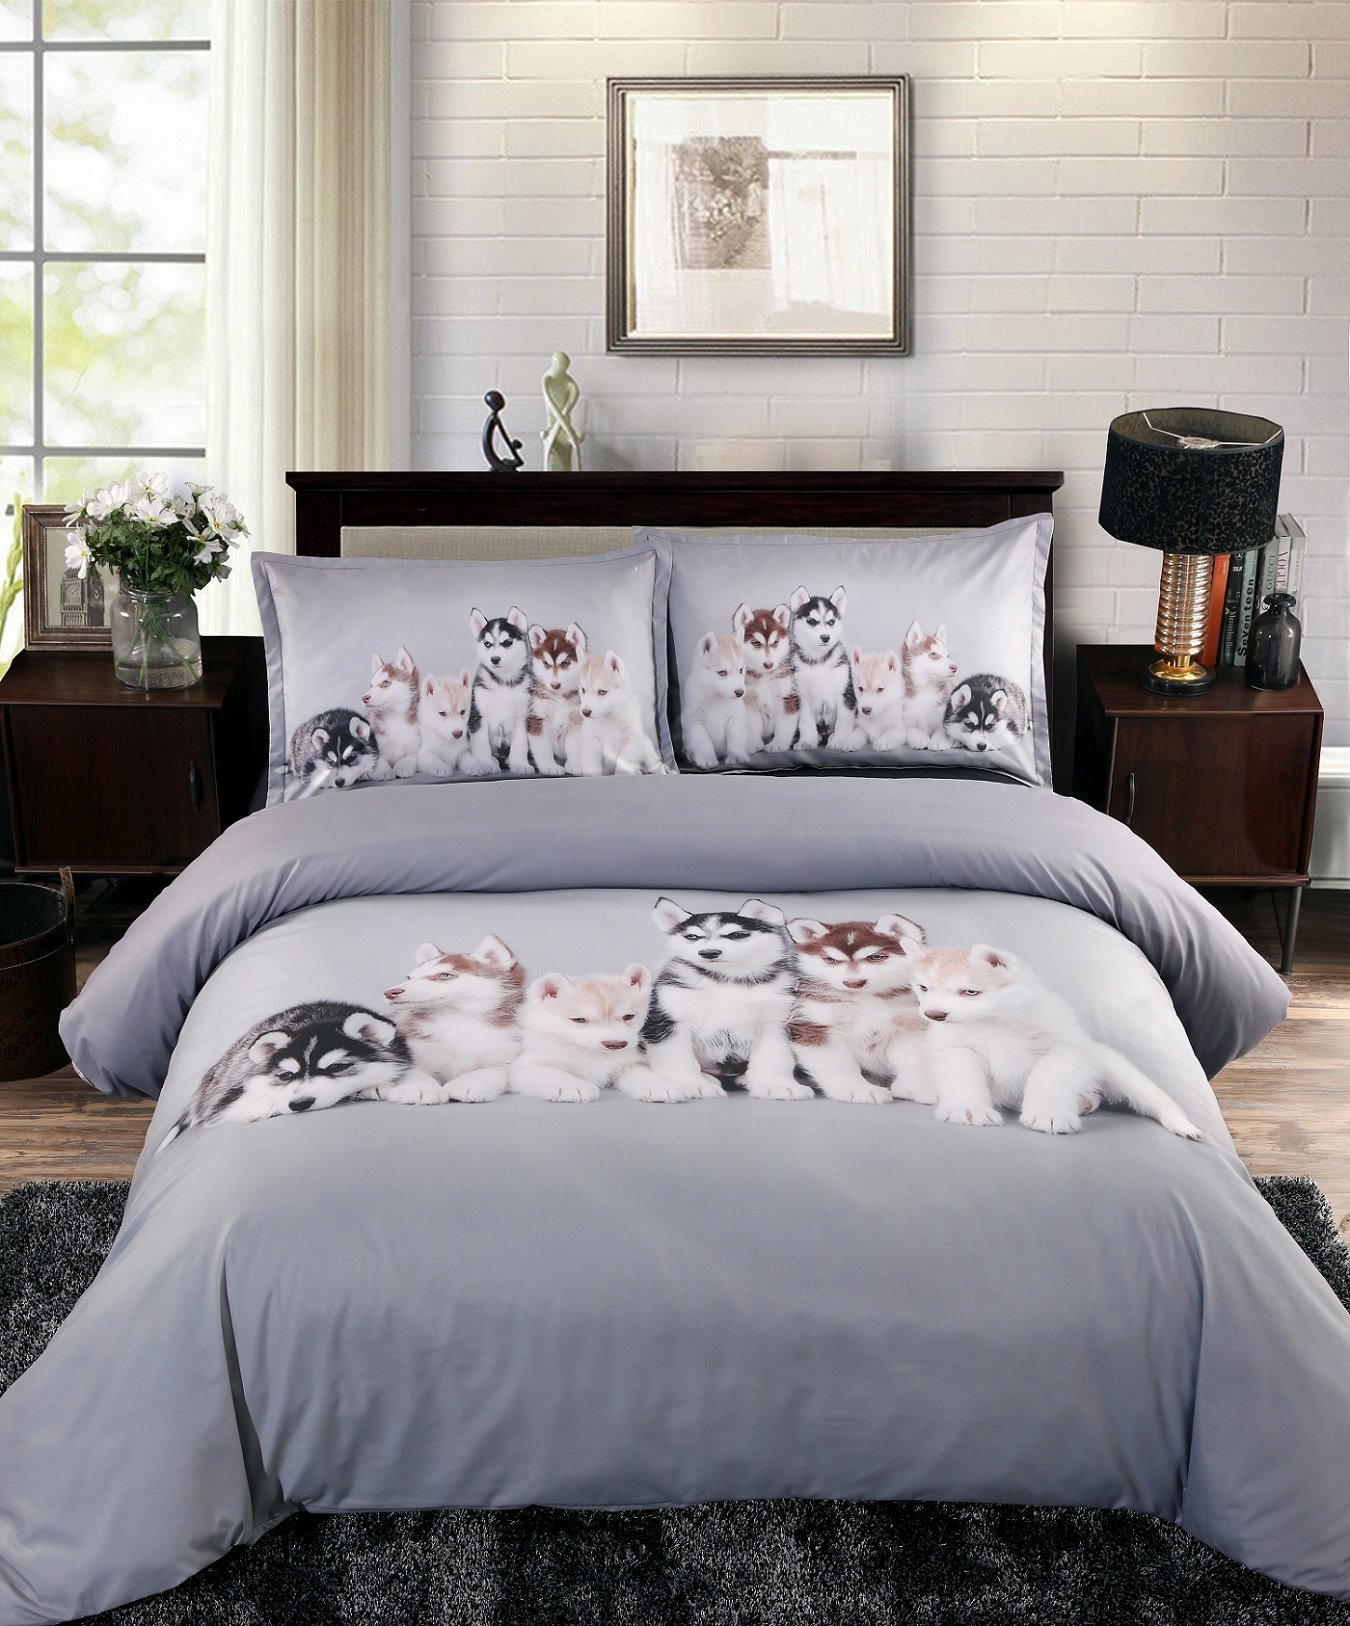 3d Husky Puppies Printed 4 Piece Bedding Sets Duvet Covers